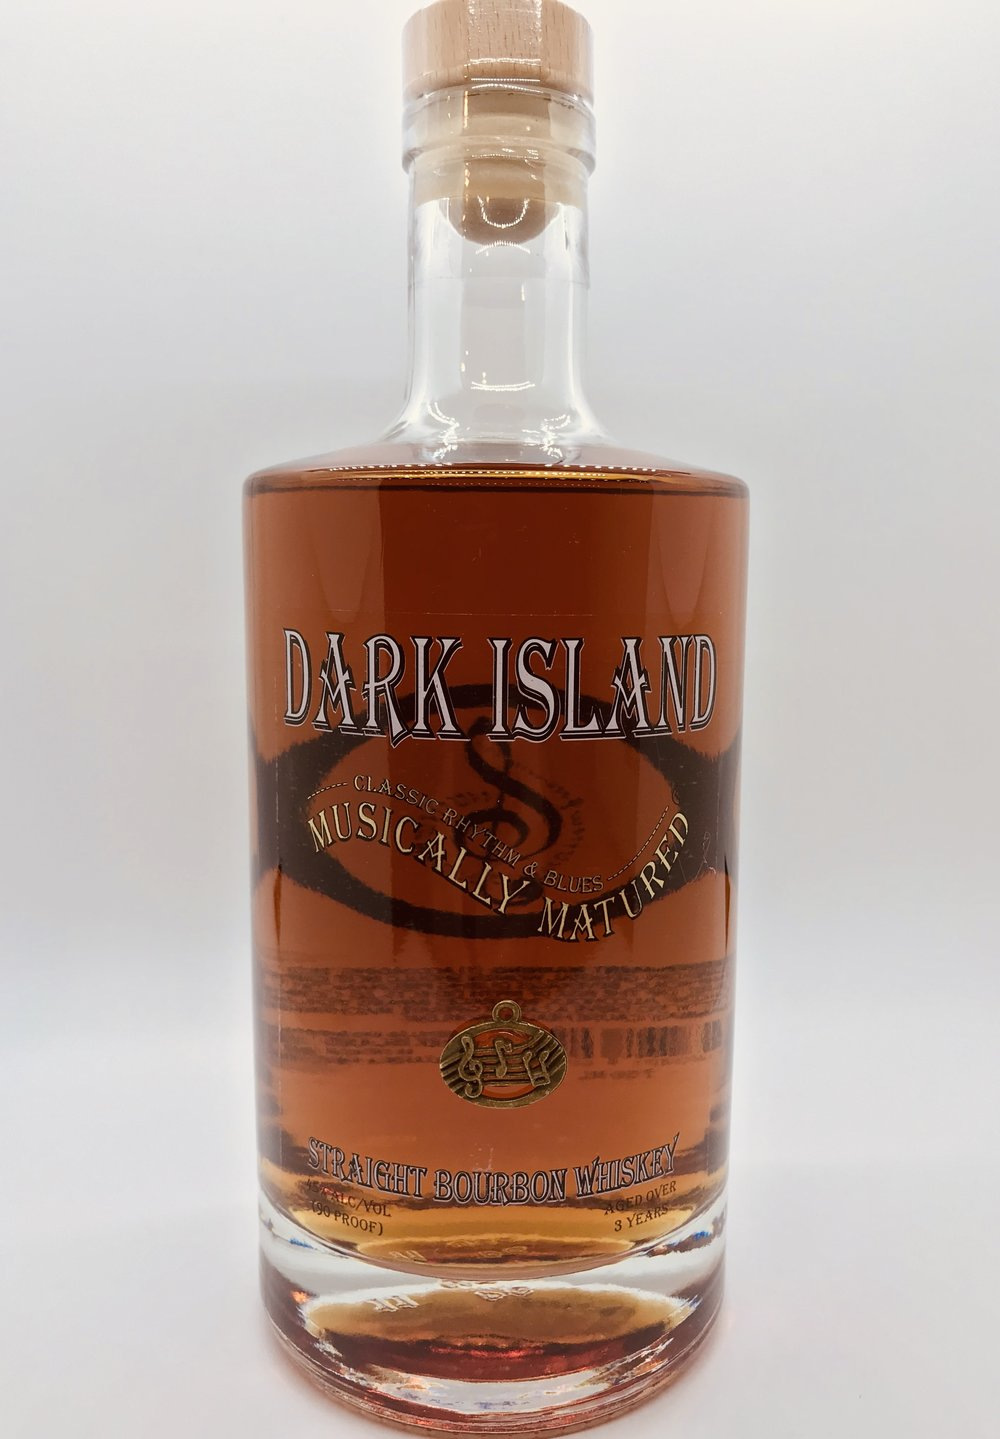 "Dark Island Blues Bourbon - Straight Bourbon Whiskey made in Northern New York. 2018 Multi Gold Medal winning, grain to glass Bourbon by a True Craft Distillery.In a sea of fake, warmed up, re-bottled, re-branded, renamed, re-labeled, ""re-diculous"" Faux-Craft Spirits, there truly are those who will spend the time and money, to produce True Craft Spirits in-house.Dark Island Blues Bourbon. Made from New York Corn, Wheat and Malted Barley, then Musically Matured to classic Rhythm and Blues for over 2 years in new charred 53 gallon American Oak barrels.Reduced to 90 proof with Natural spring water from Frontenac Crystal Springs.A Bold True Craft Spirit, built for the adventurous drinker who's not afraid to break away from the herd."